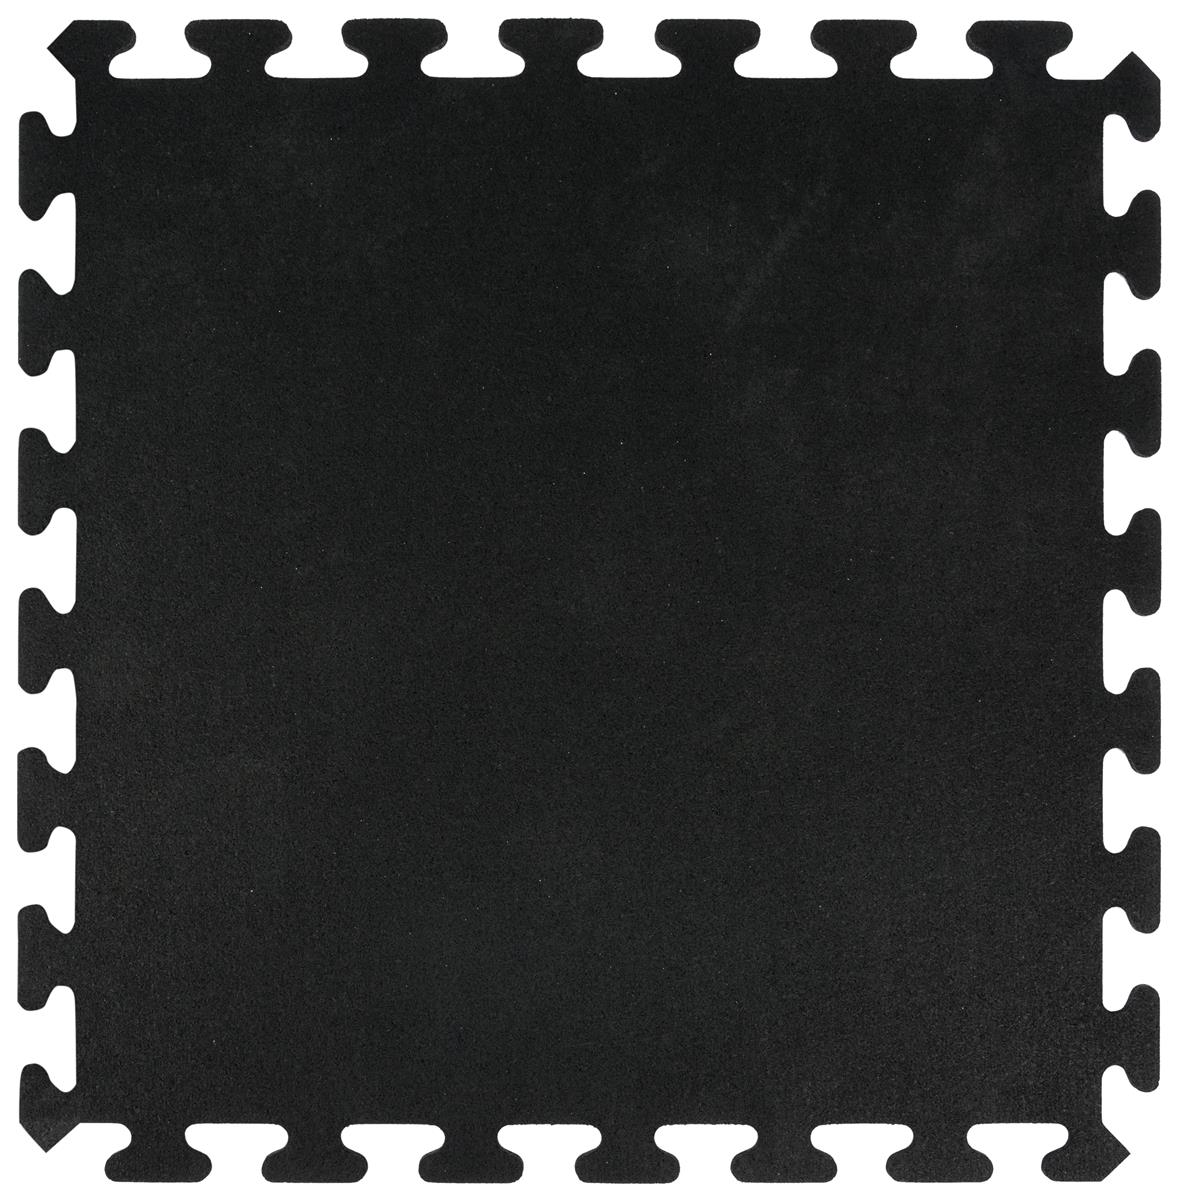 Trade Show Rubber Floor Mats Black Interlocking Tiles